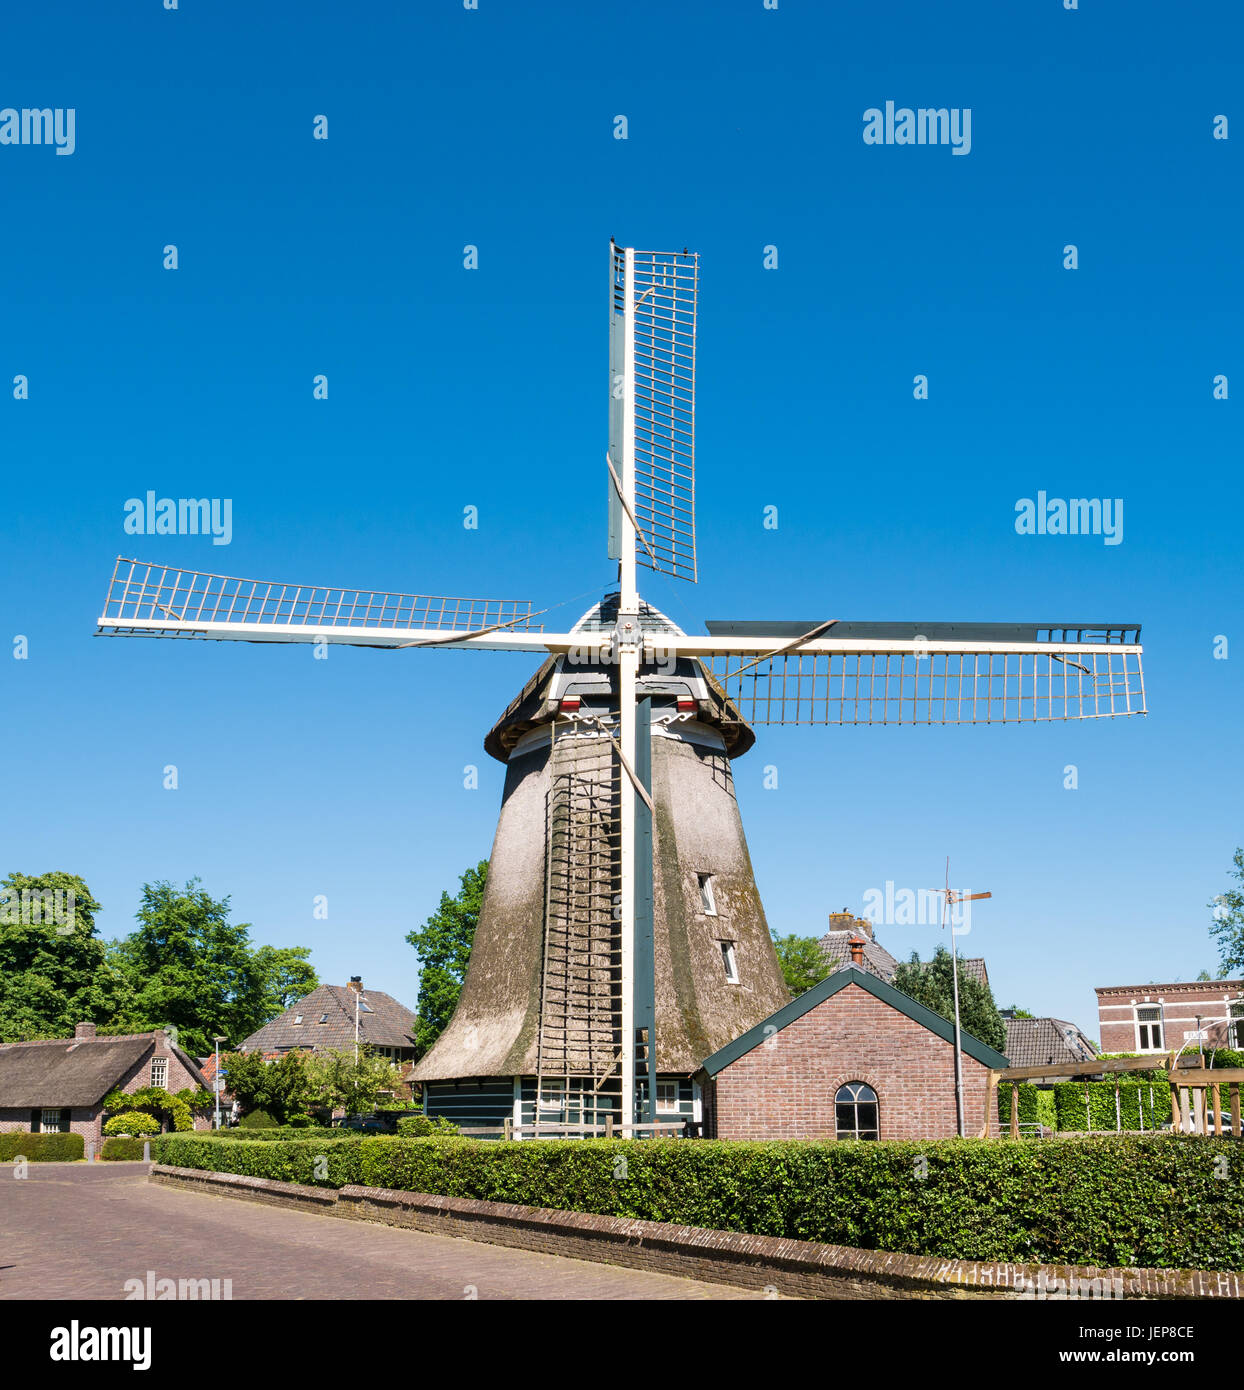 Historic windmill in old town of Laren, het Gooi, North Holland, Netherlands - Stock Image